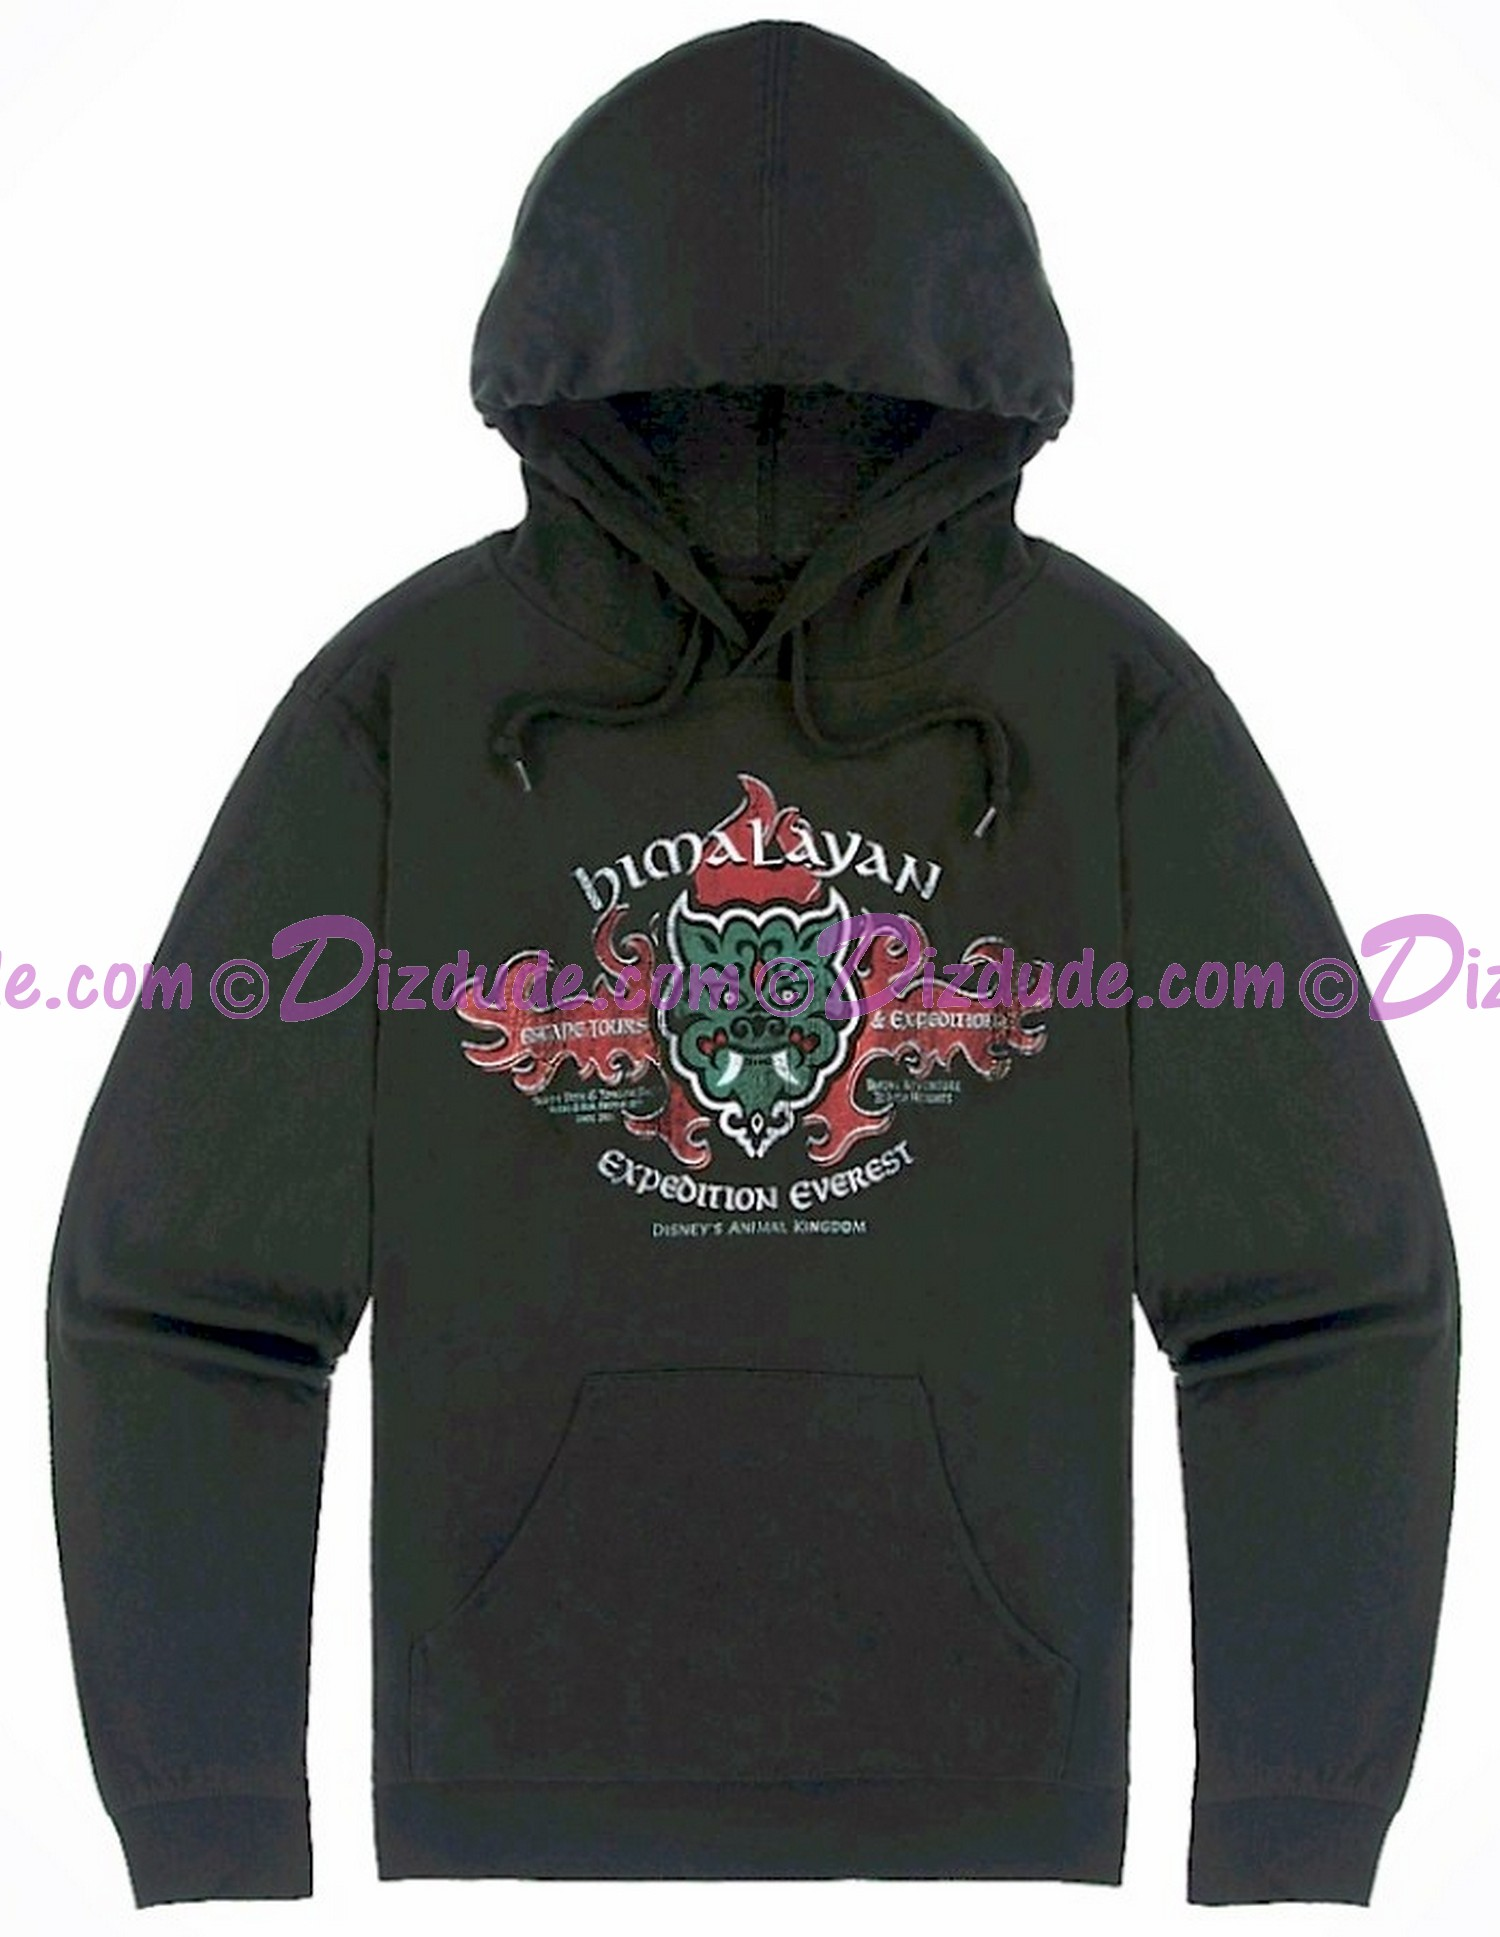 Himalayan Expedition Everest Ladies Hoodie